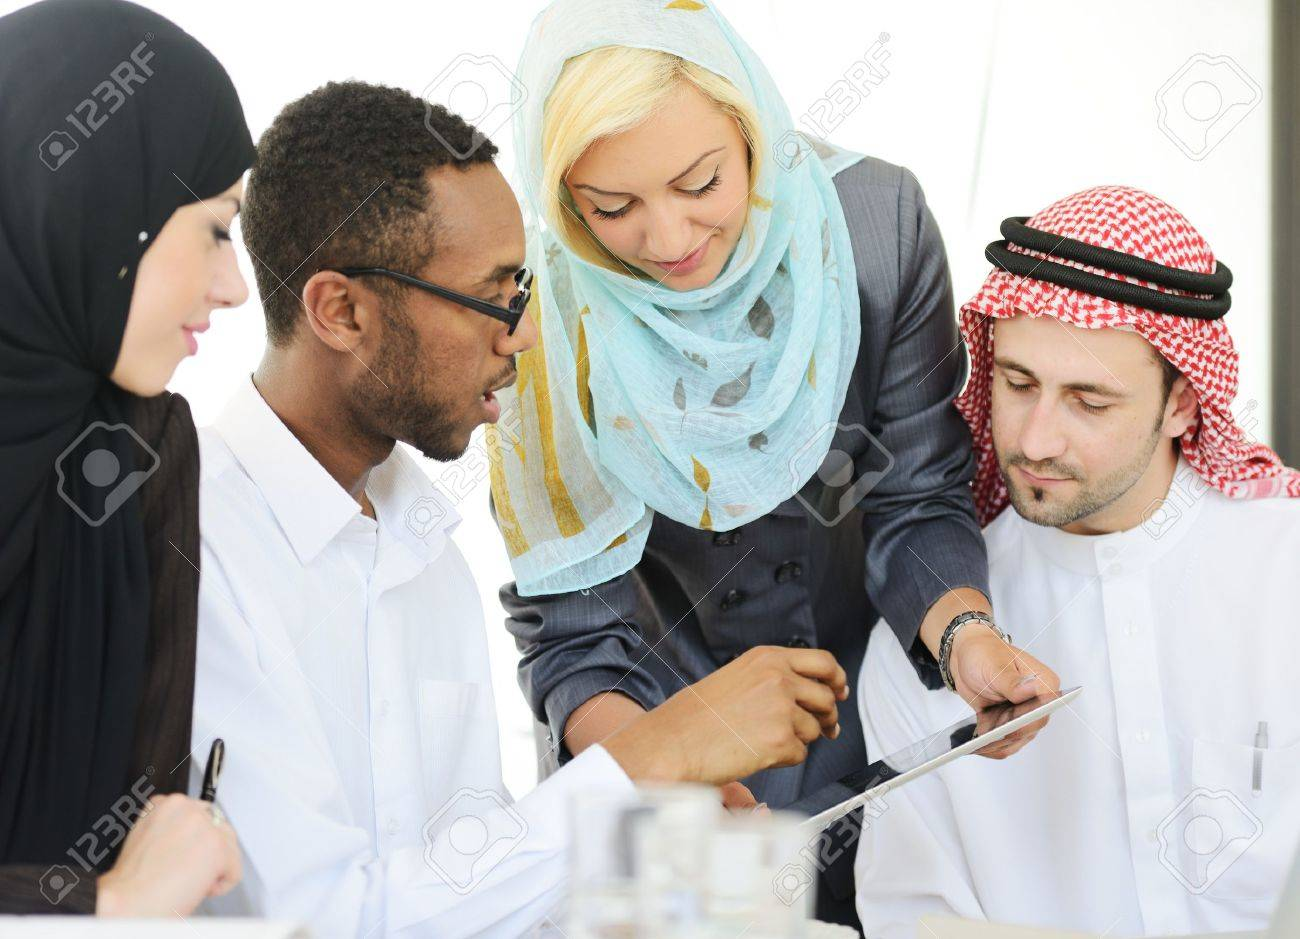 Arabic people having a business meeting Stock Photo - 18477267